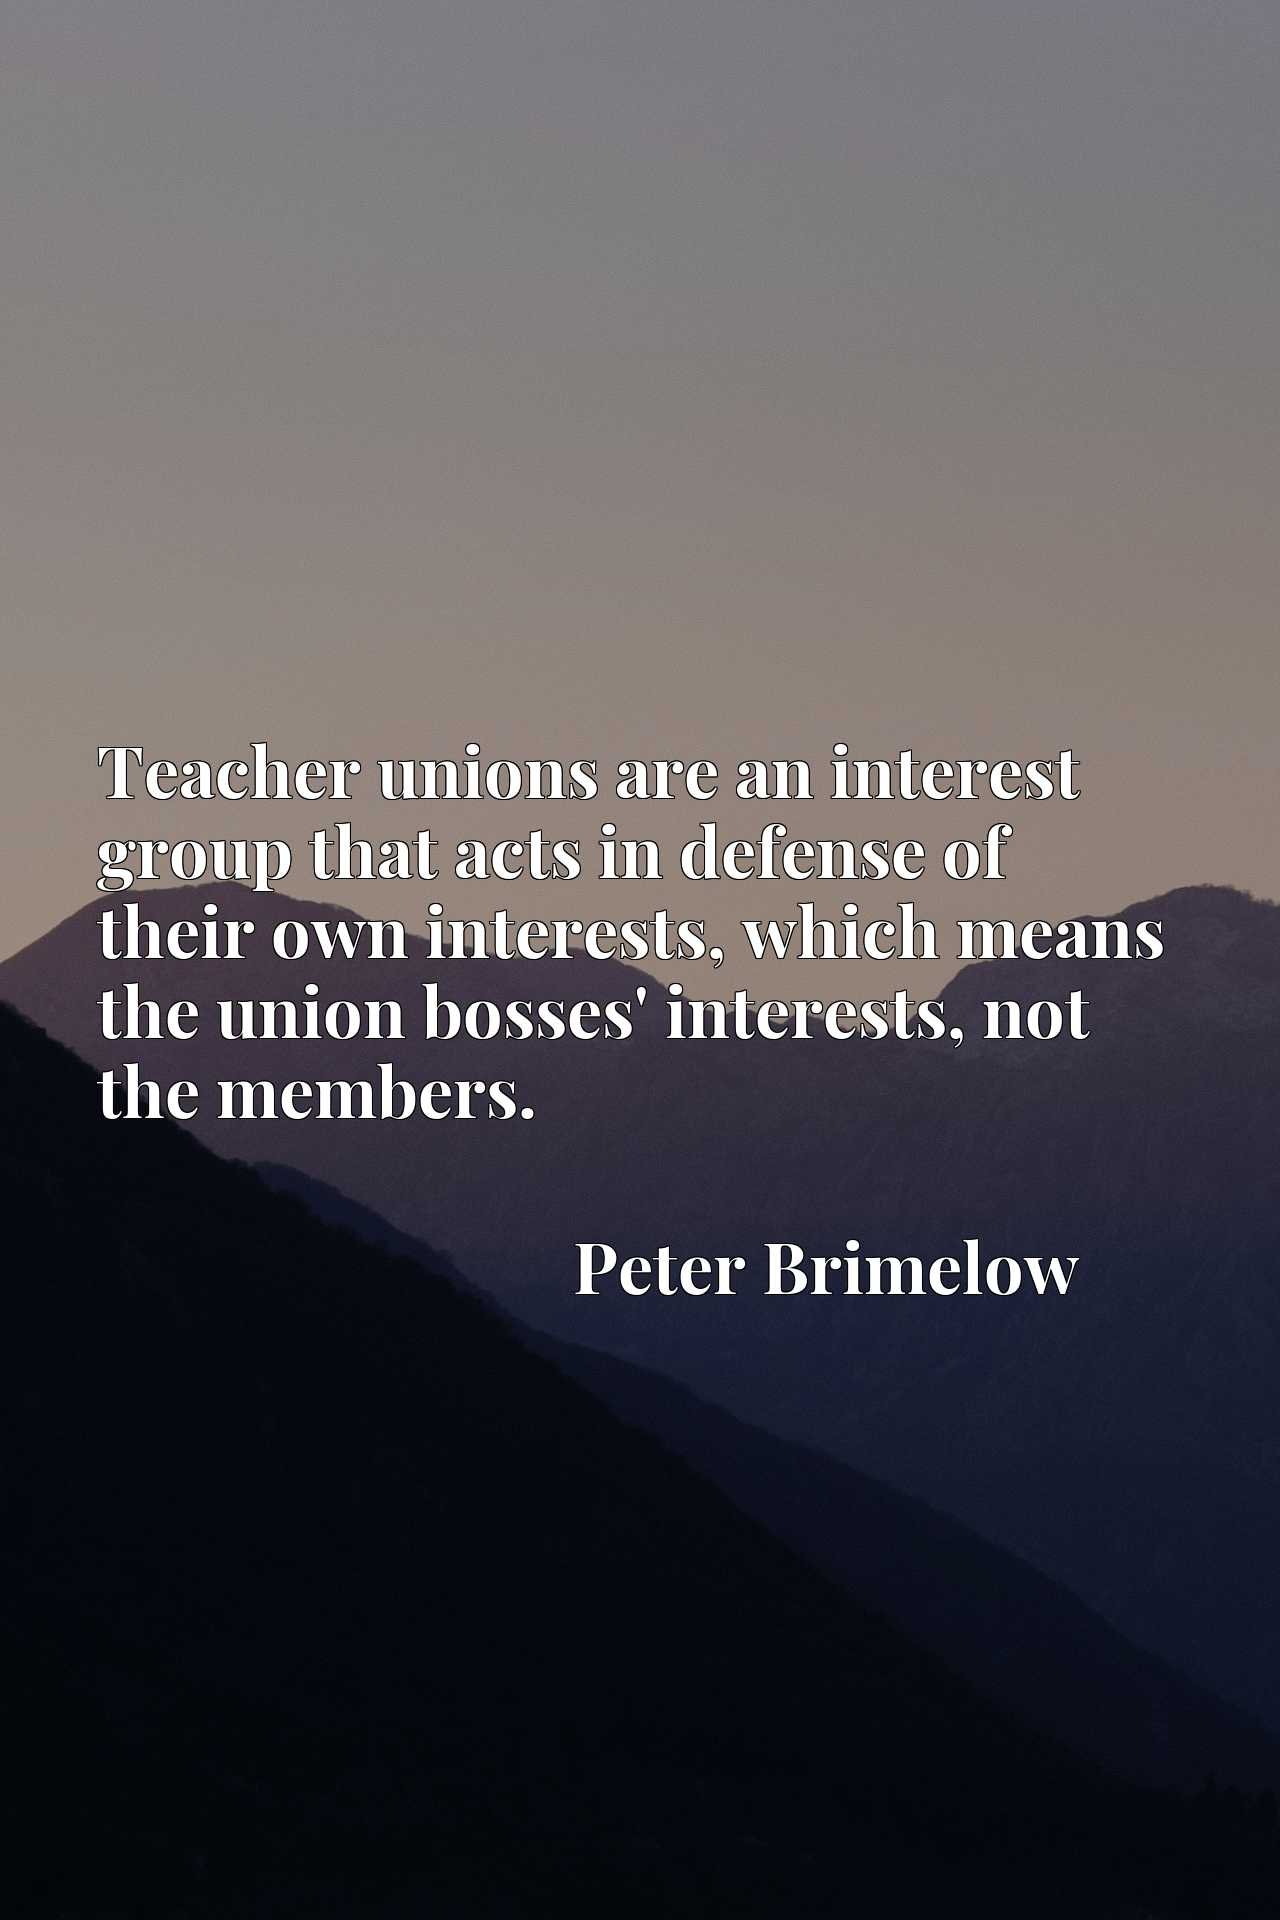 Quote Picture :Teacher unions are an interest group that acts in defense of their own interests, which means the union bosses' interests, not the members.